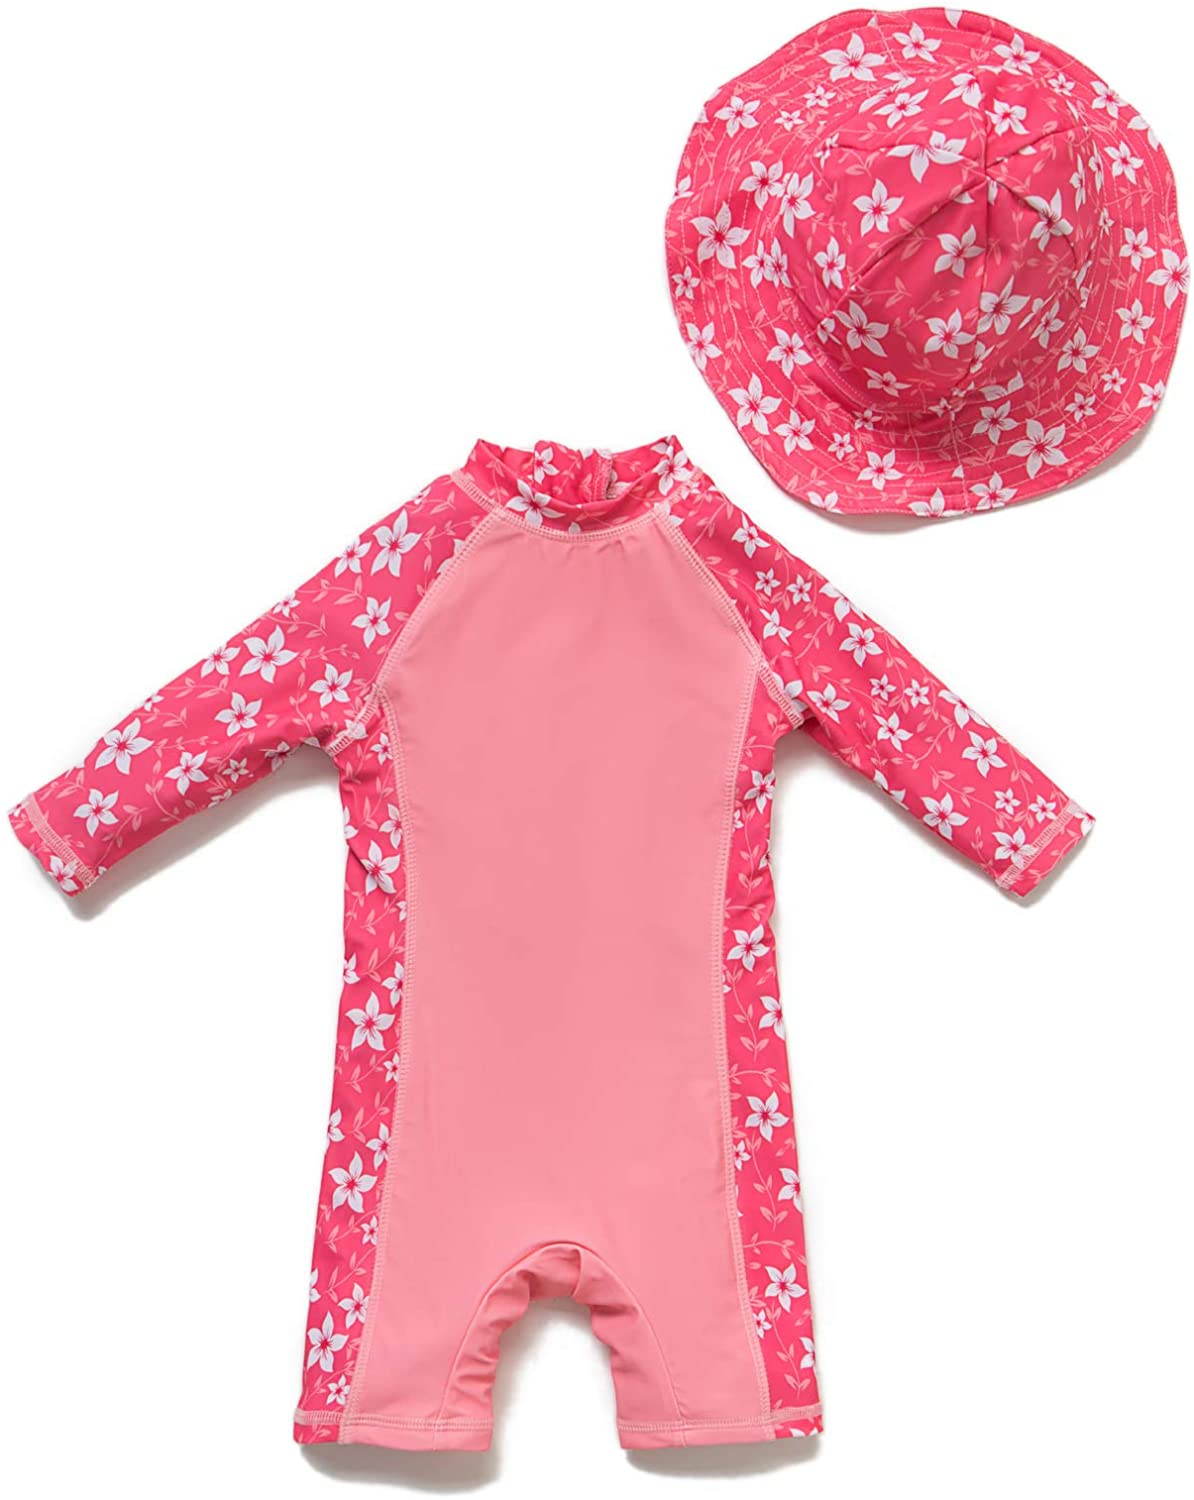 Baby Girl Bathing Suit L/S UPF 50+ Sun Protection Come with a Hats